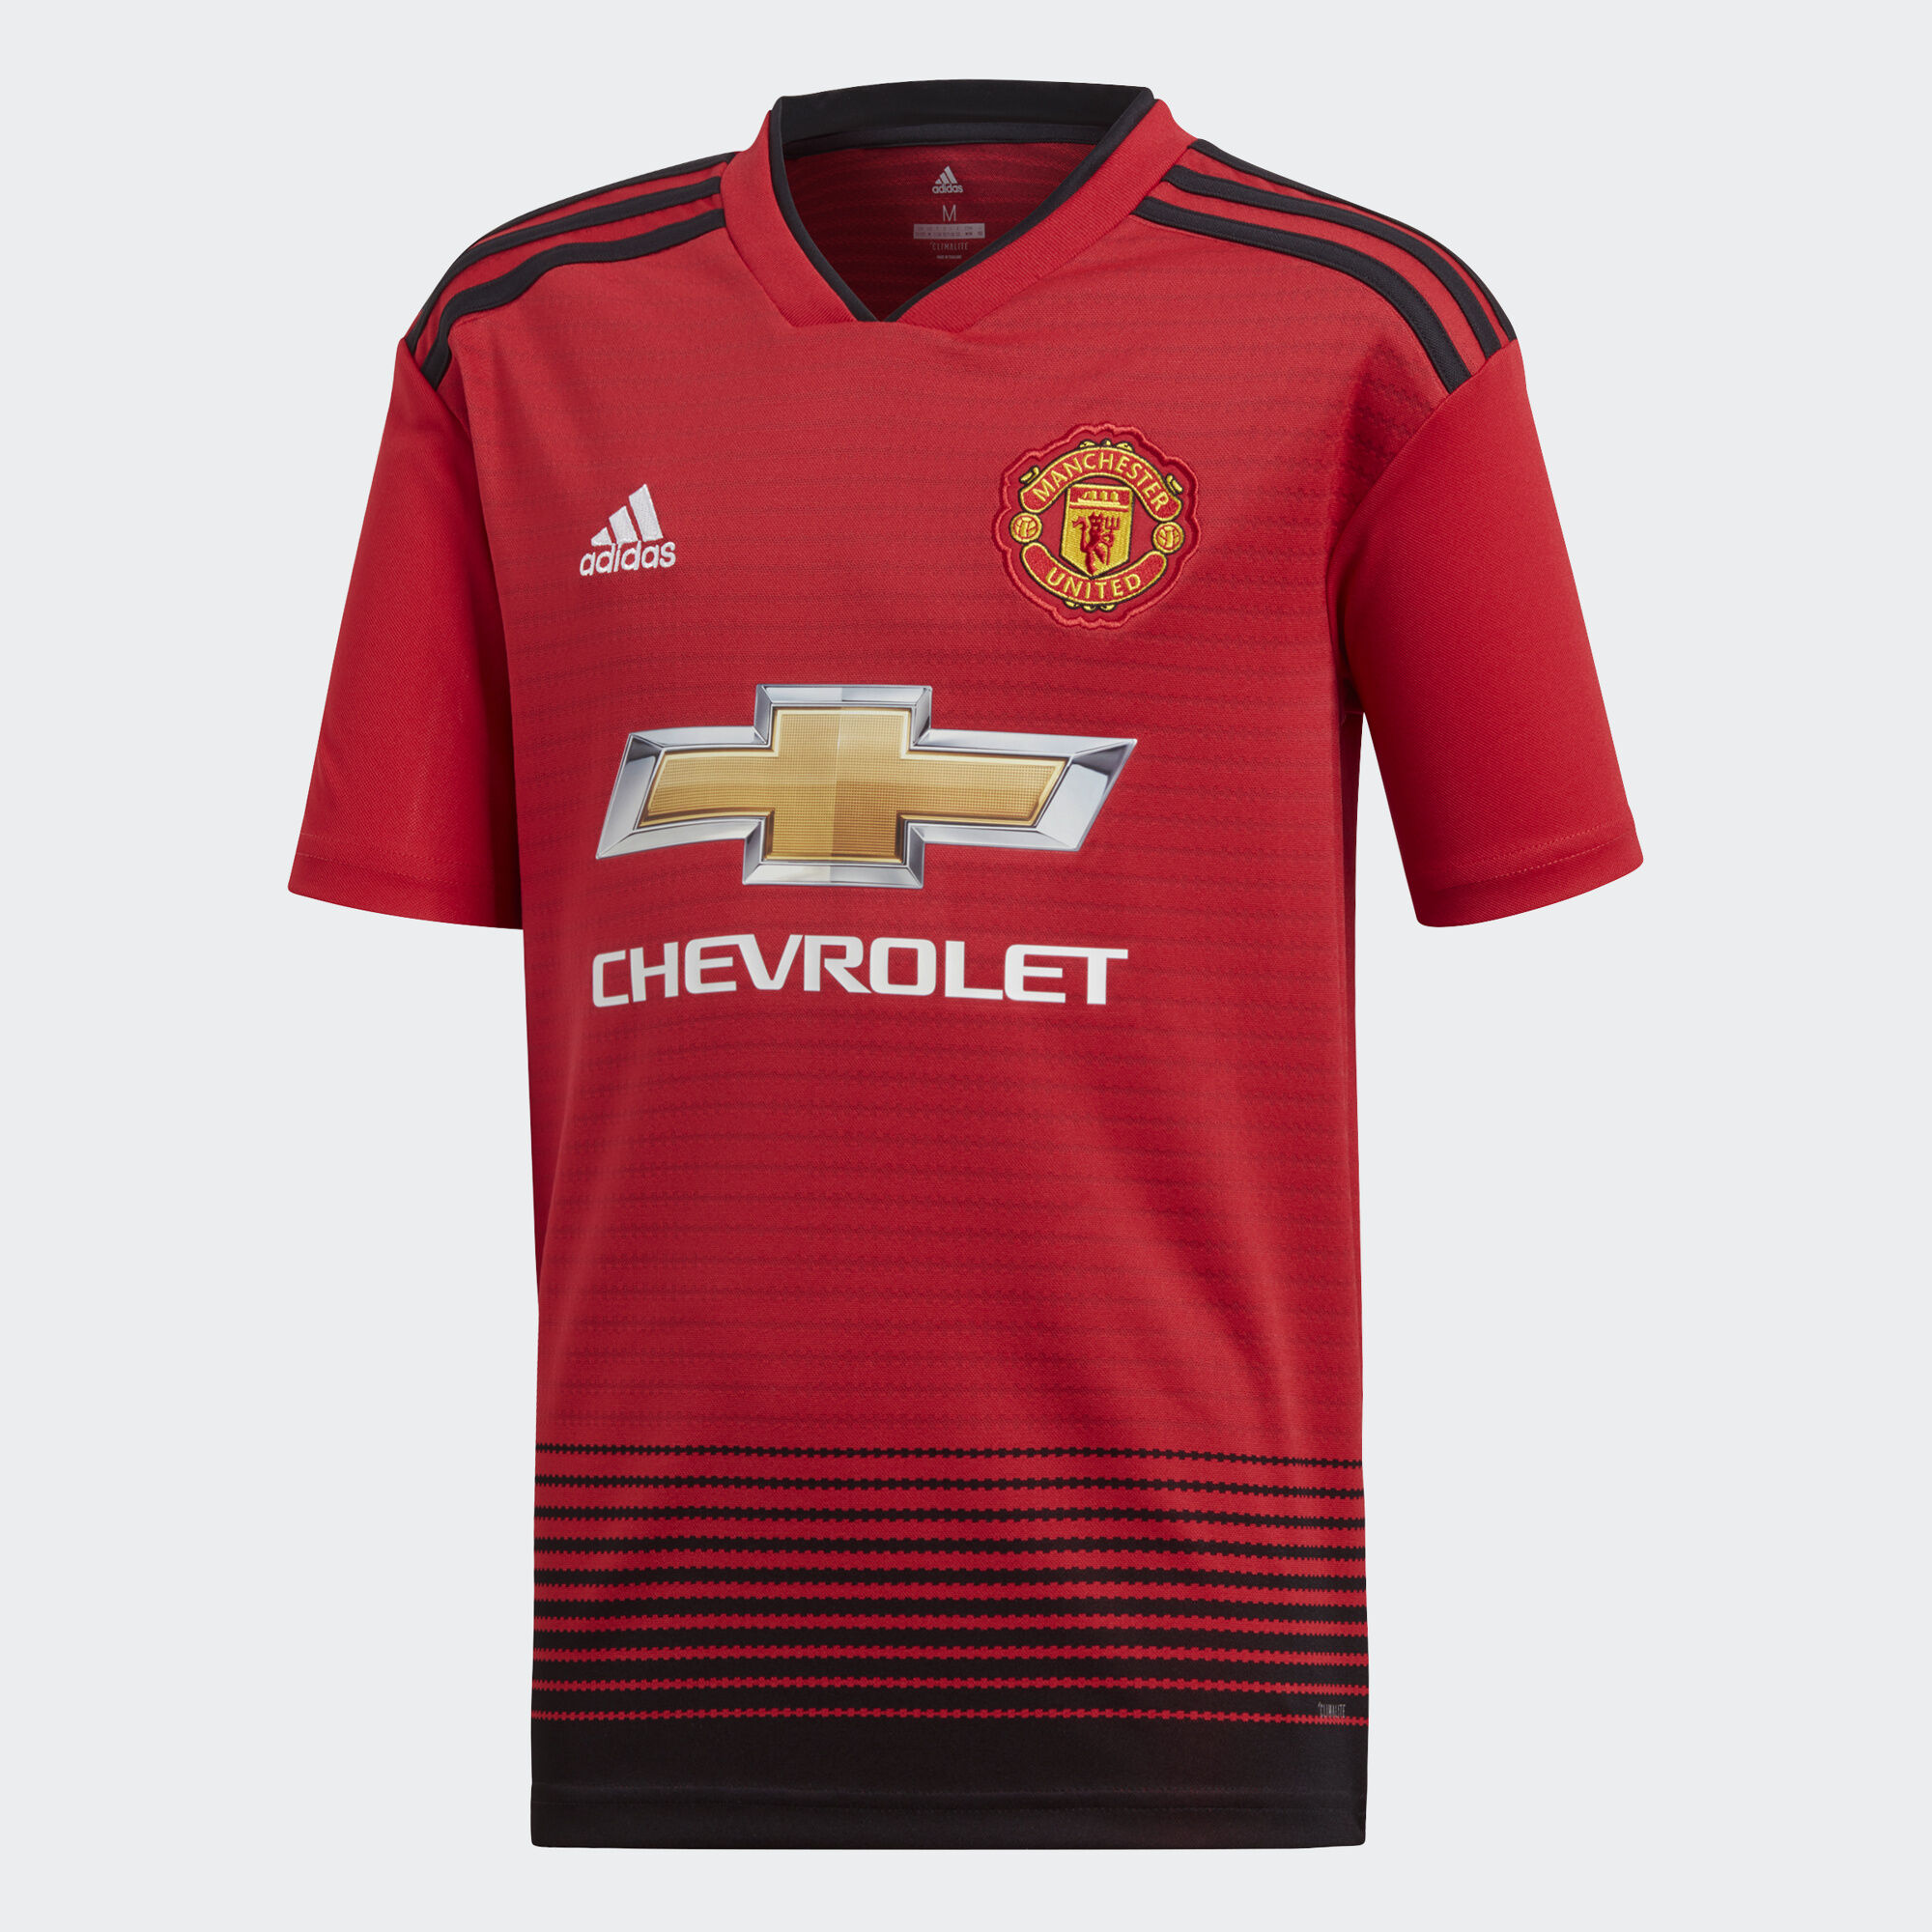 adidas - Manchester United Home Jersey Real Red   Black CG0048 4b4146b2f9384